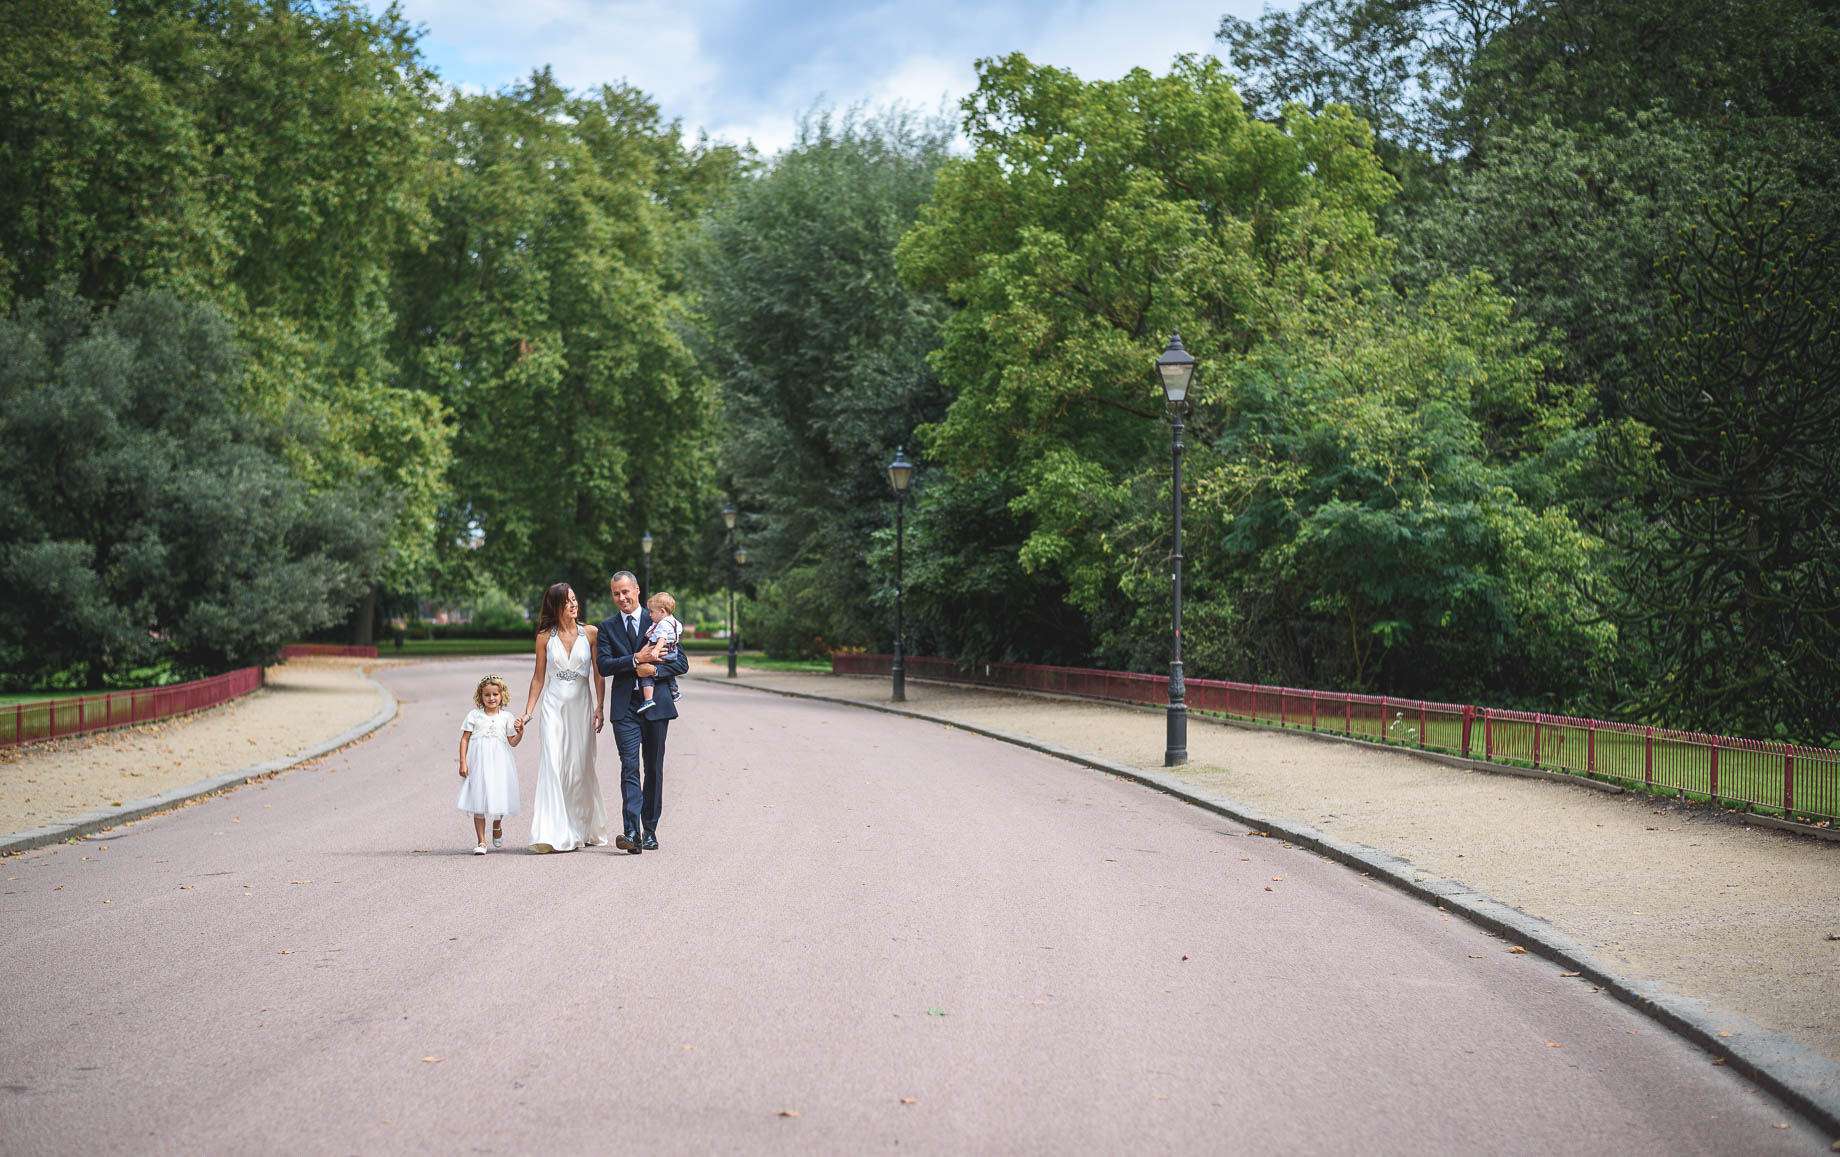 Chelsea and Mayfair wedding photography - Guy Collier - Vicki and Damien (77 of 126)